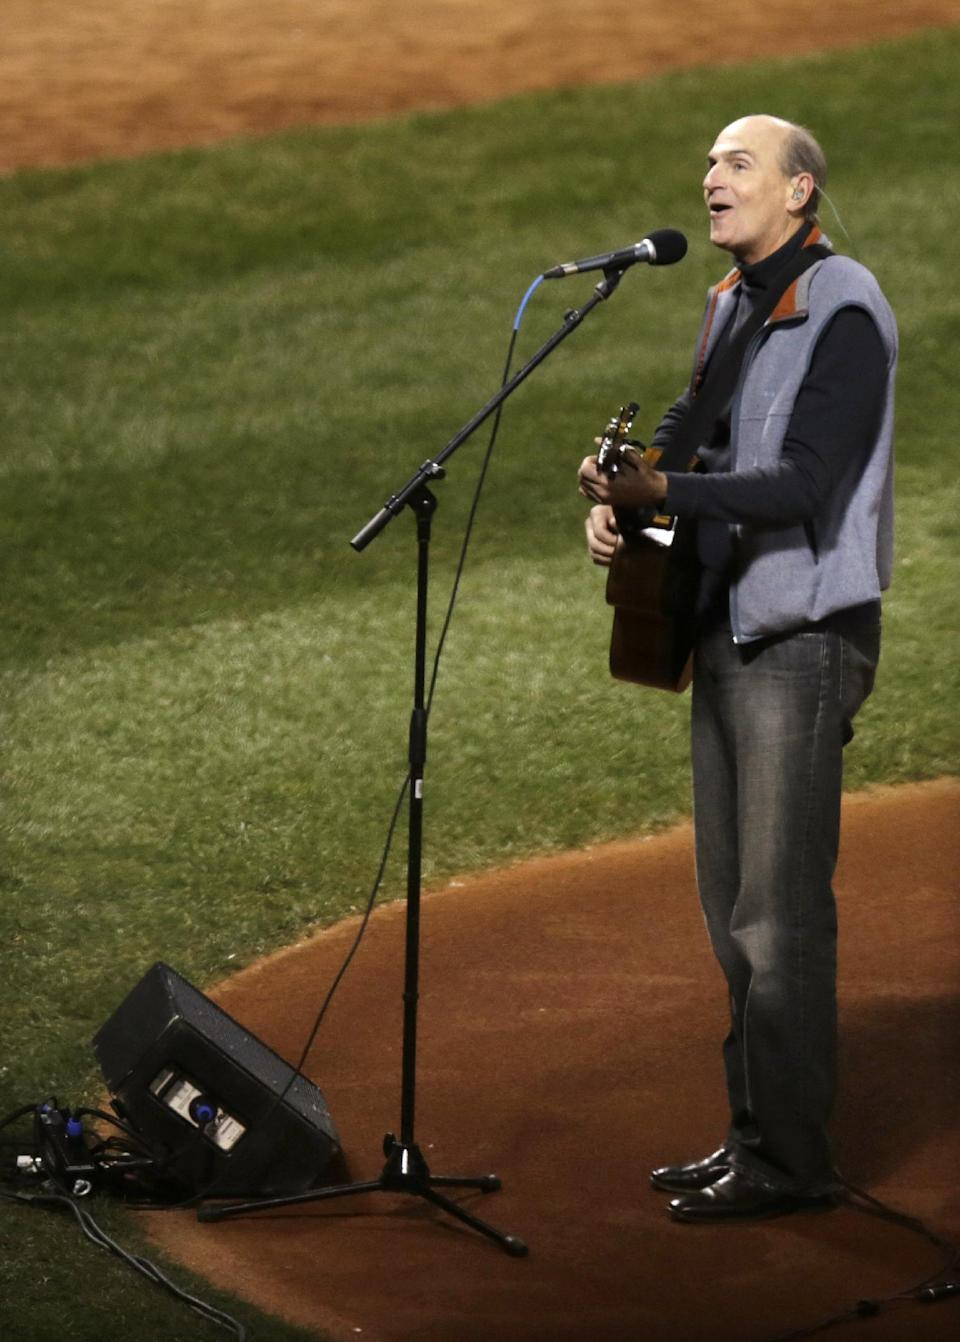 James Taylor sings the national anthem before Game 2 of baseball's World Series between the Boston Red Sox and the St. Louis Cardinals Thursday, Oct. 24, 2013, in Boston. (AP Photo/Charles Krupa)